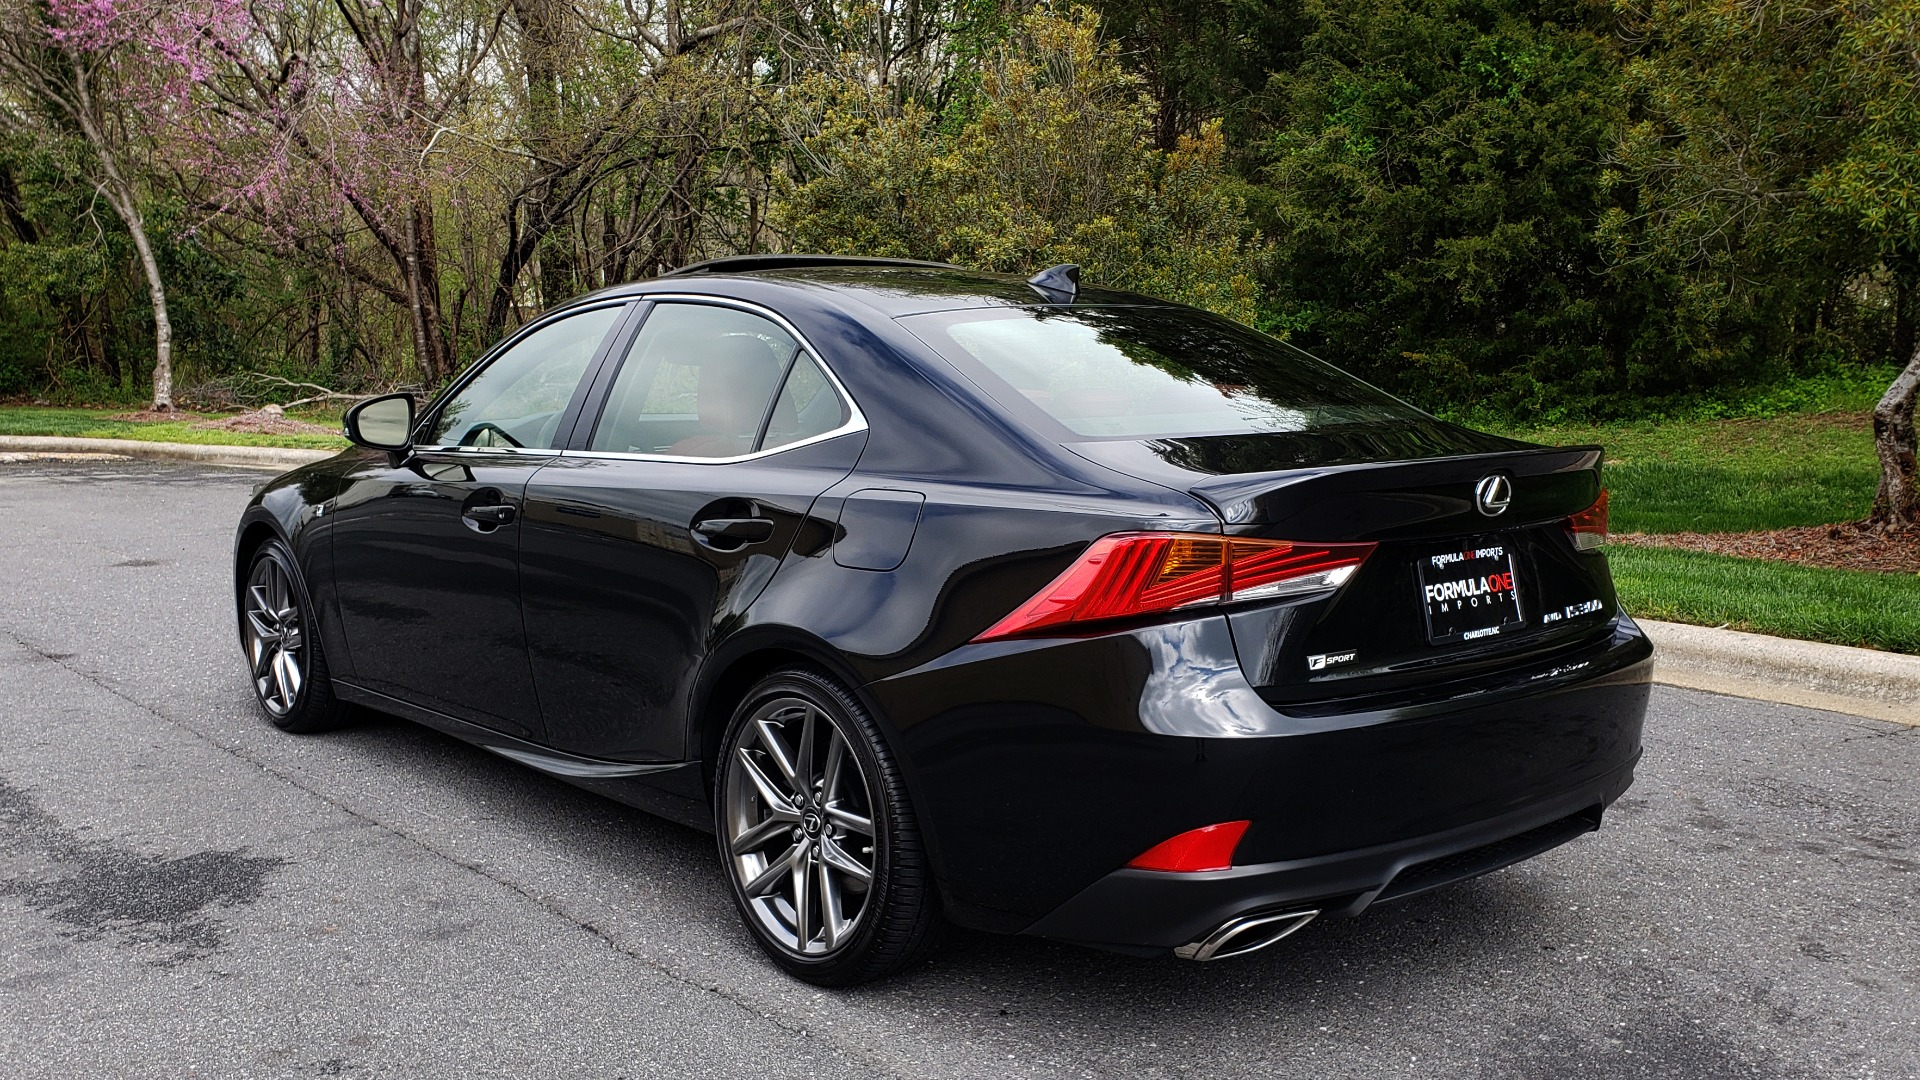 Used 2017 Lexus IS 300 F SPORT AWD / NAV / SUNROOF / REARVIEW / VENT SEATS / BSM for sale Sold at Formula Imports in Charlotte NC 28227 3